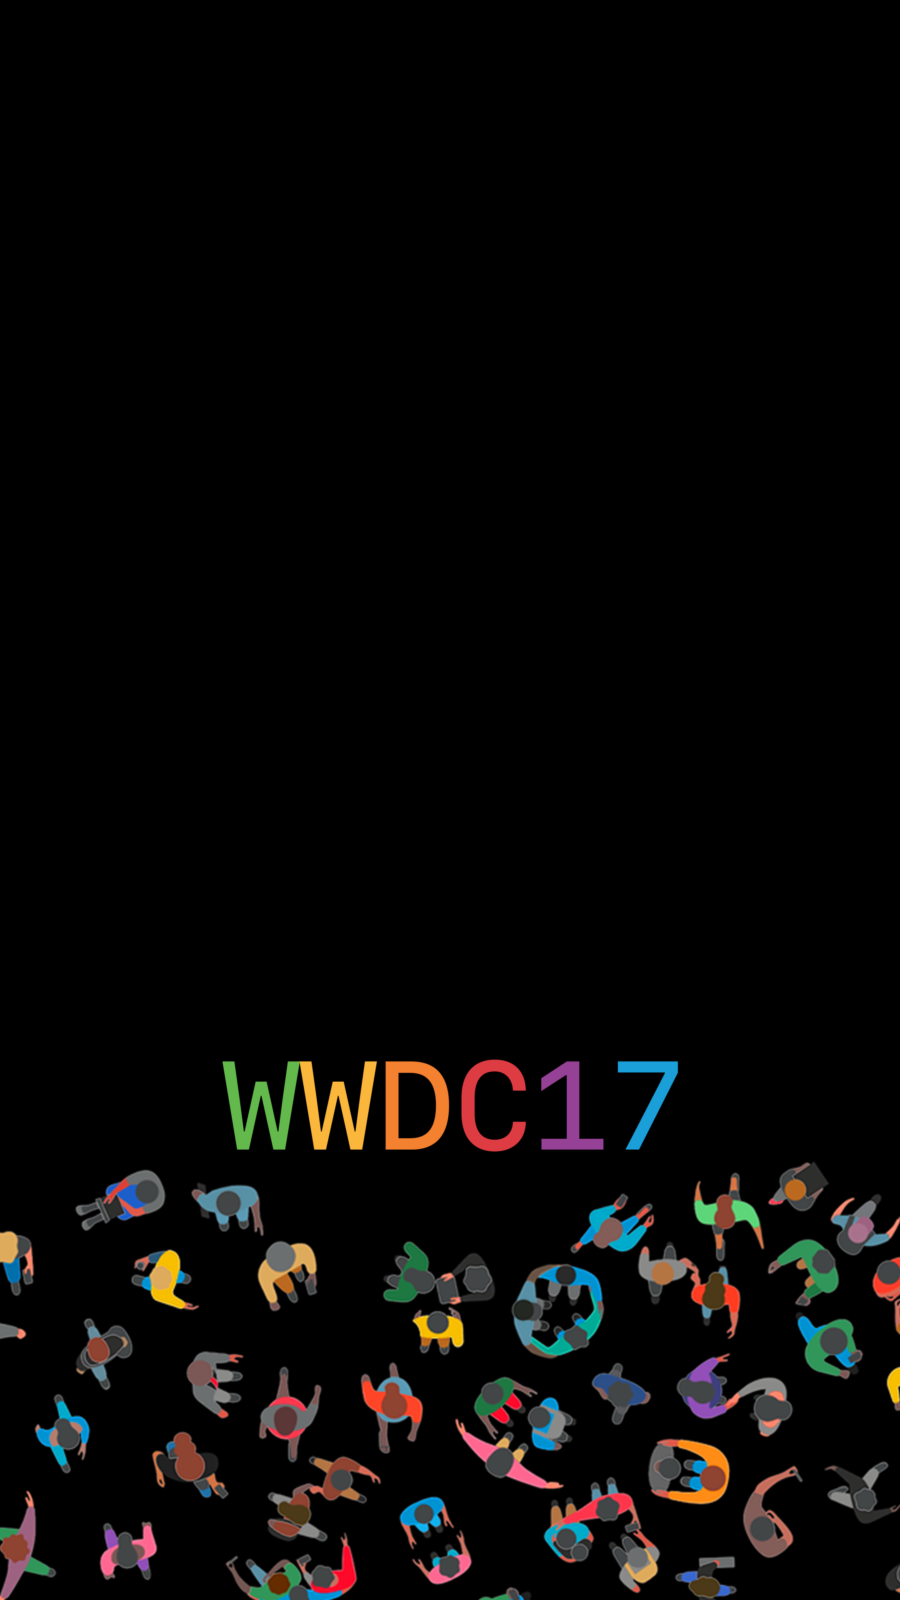 wwdc17-main-iPhone-wallpaper-mattbirchler-900x1600